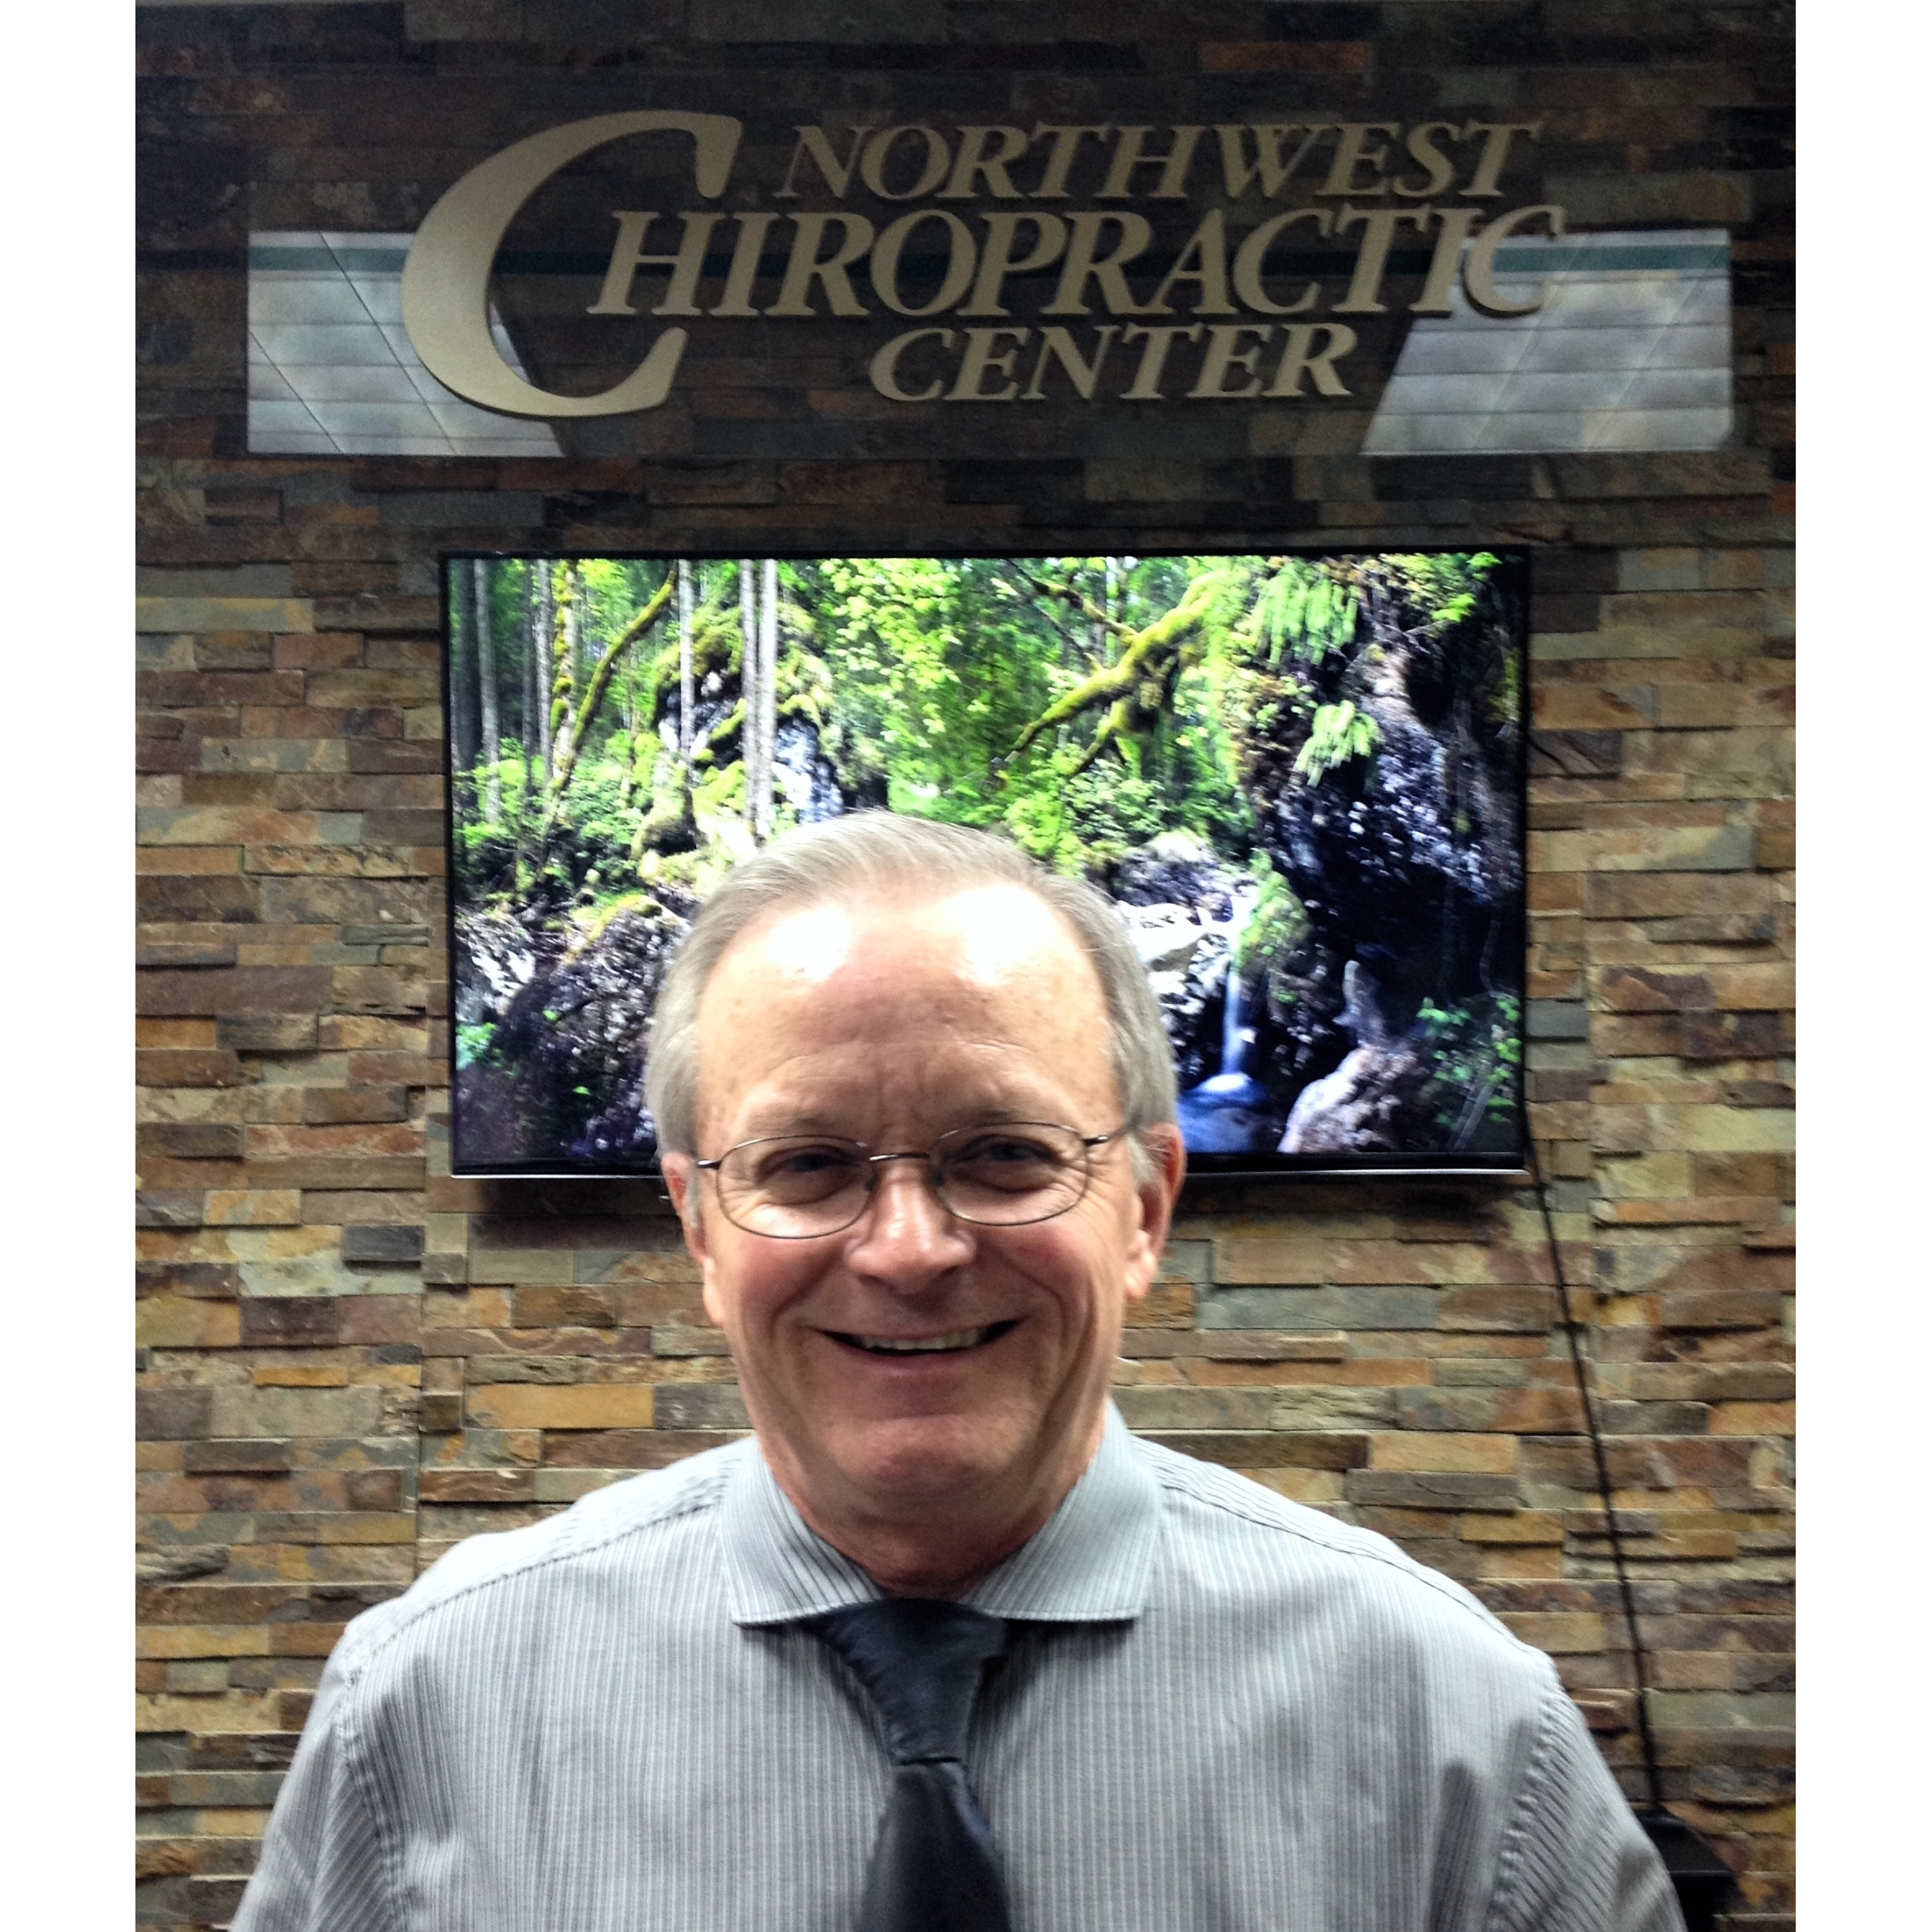 Northwest Chiropractic Center